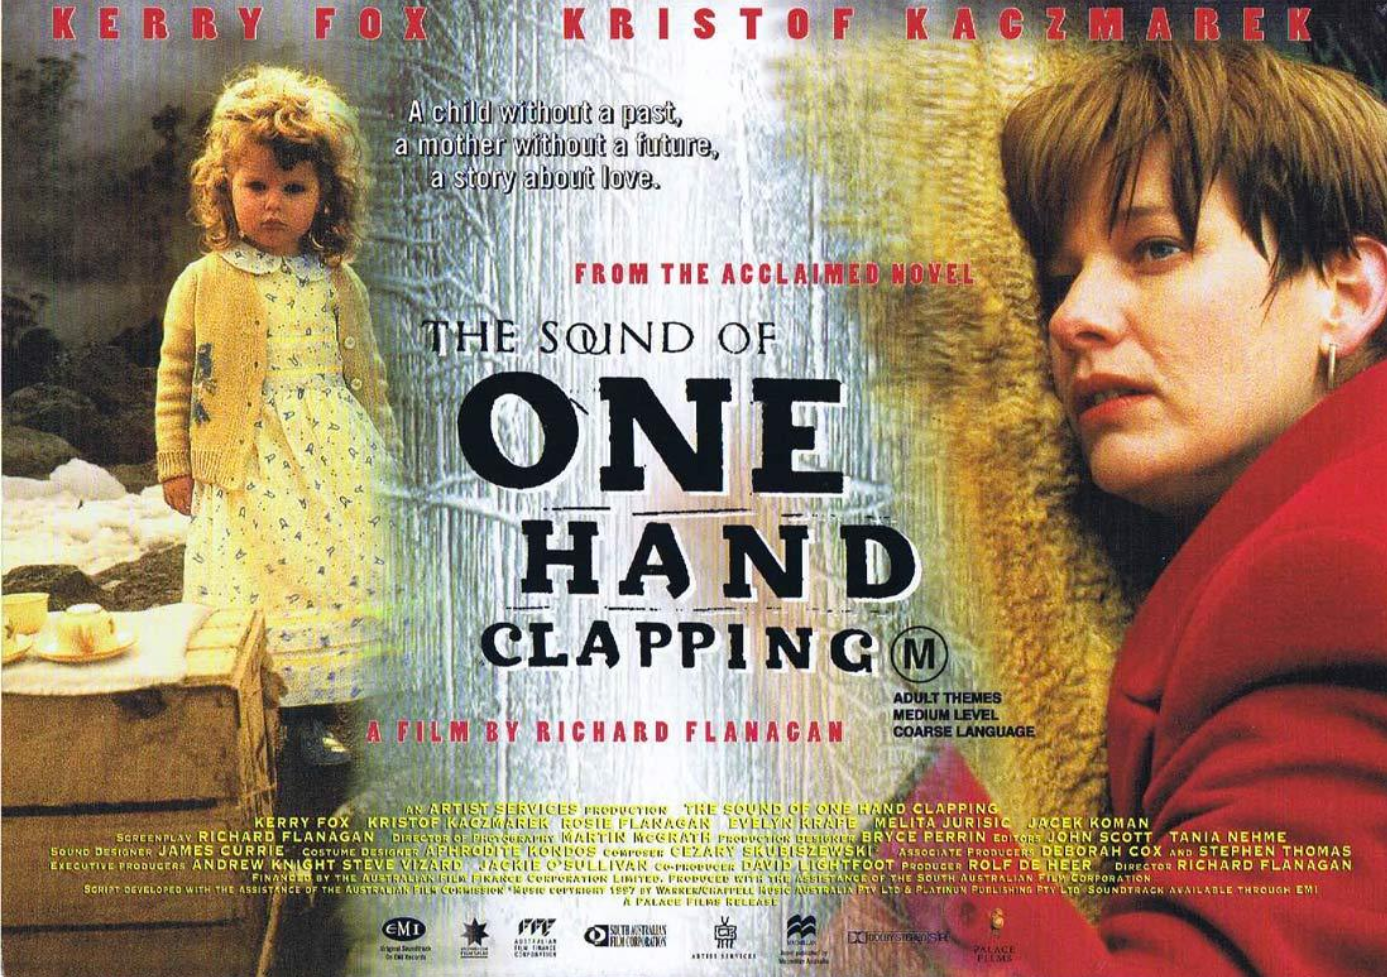 The Sound of One Hand Clapping (1998)